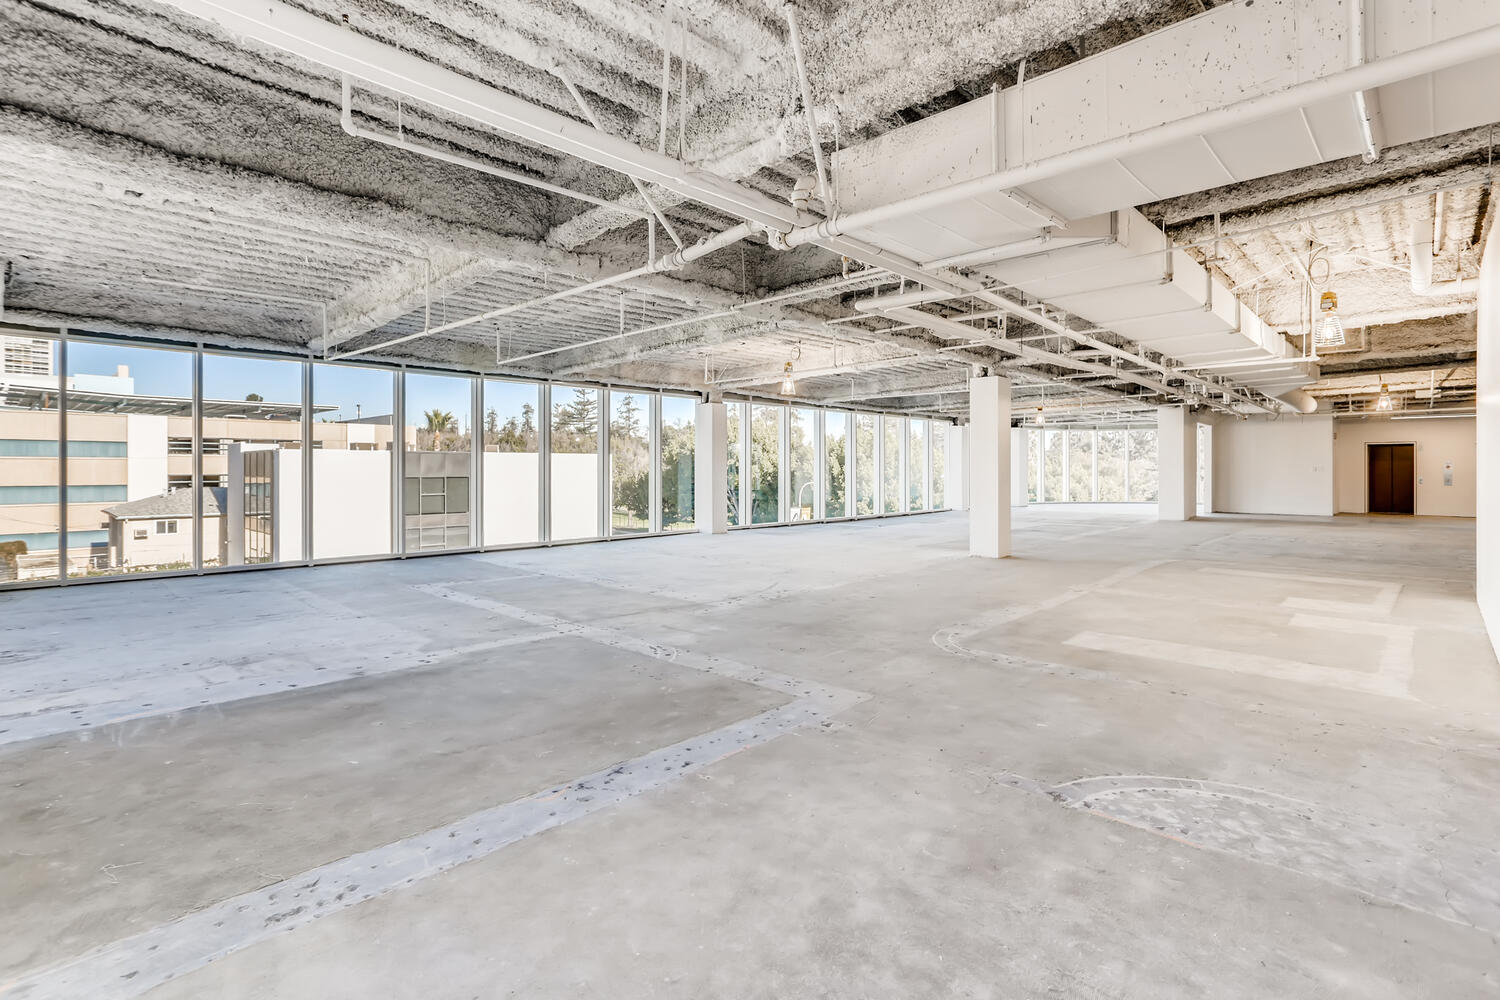 Bespoke Los Angeles CA Office building for sale